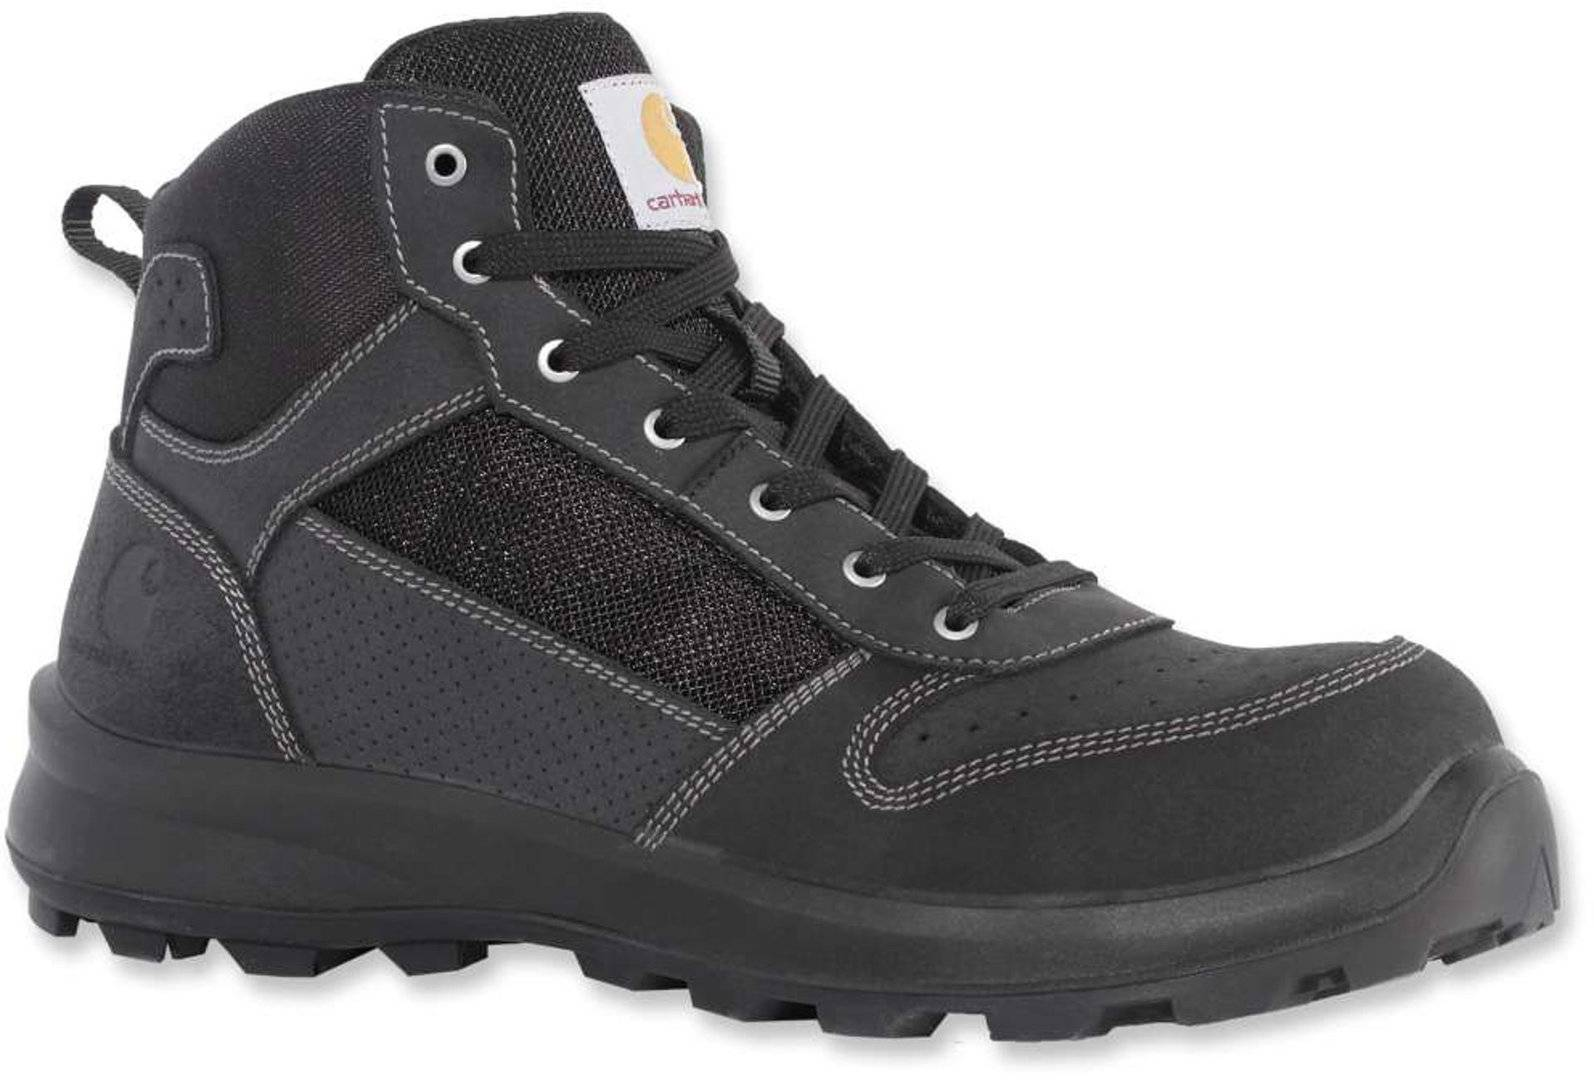 Carhartt Mid S1P Safety Boots  - Size: 45